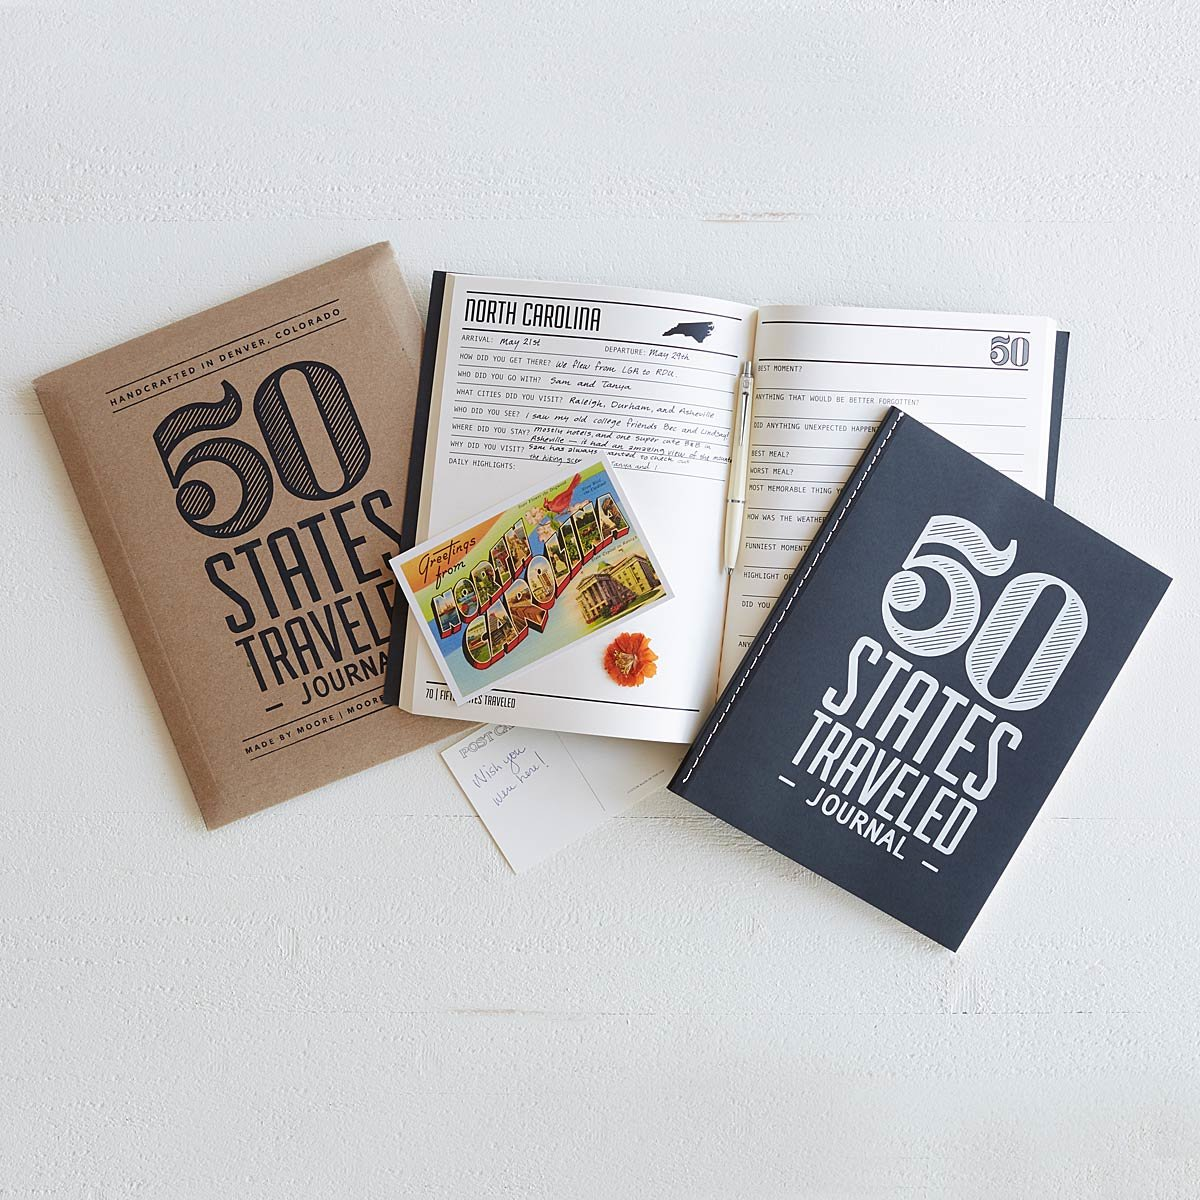 1 Year Anniversary Gifts, Unique Paper Gifts | UncommonGoods